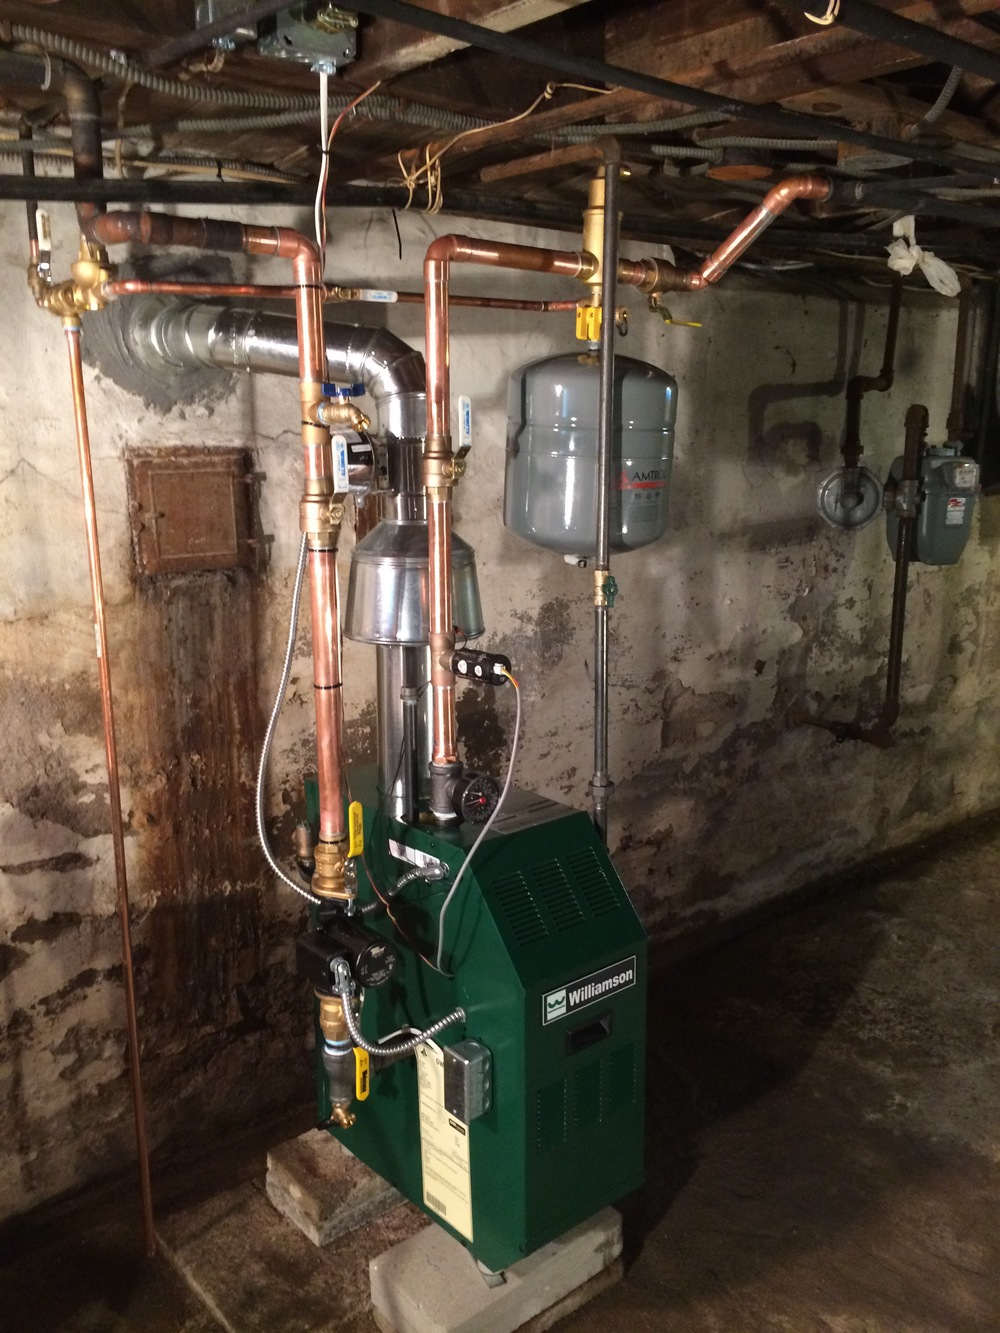 Williamson boiler installation in Hilton, NY